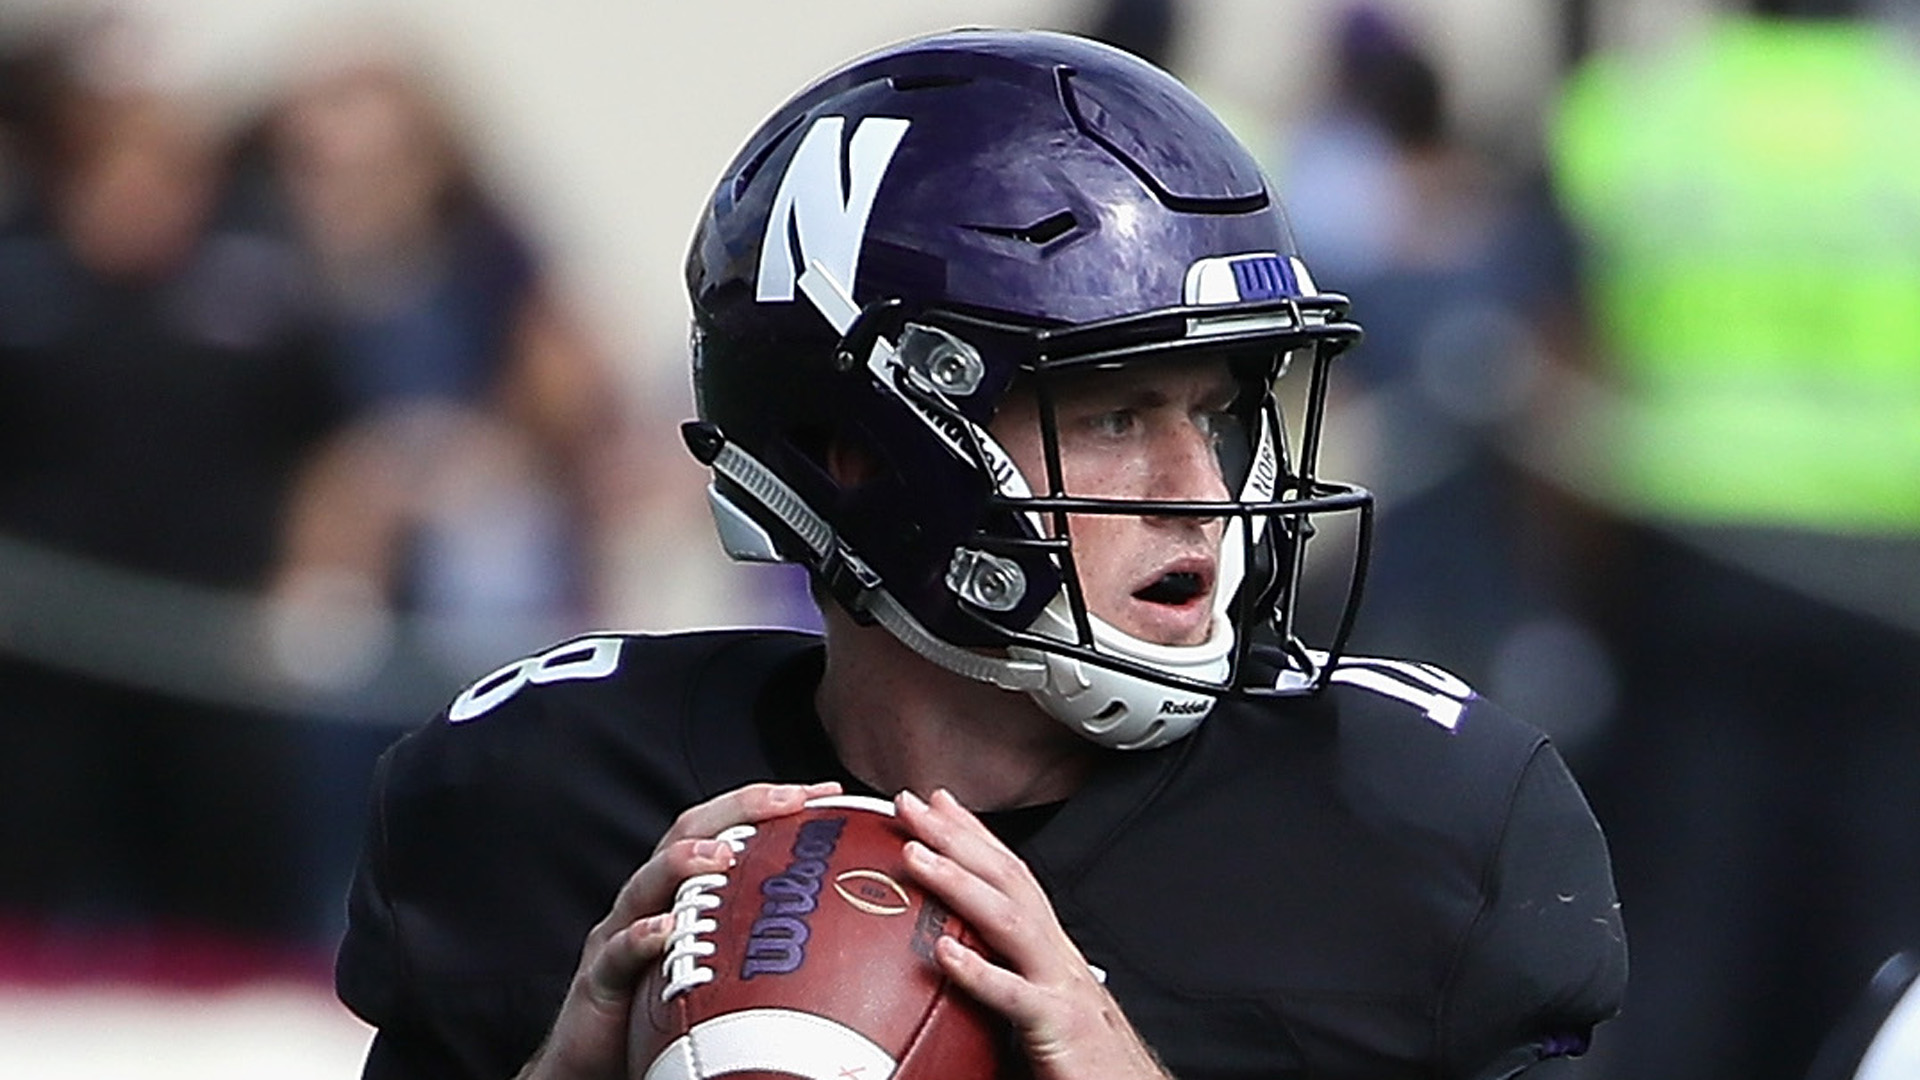 Northwestern's Clayton Thorson suffers scary knee injury, scheduled for MRI Saturday